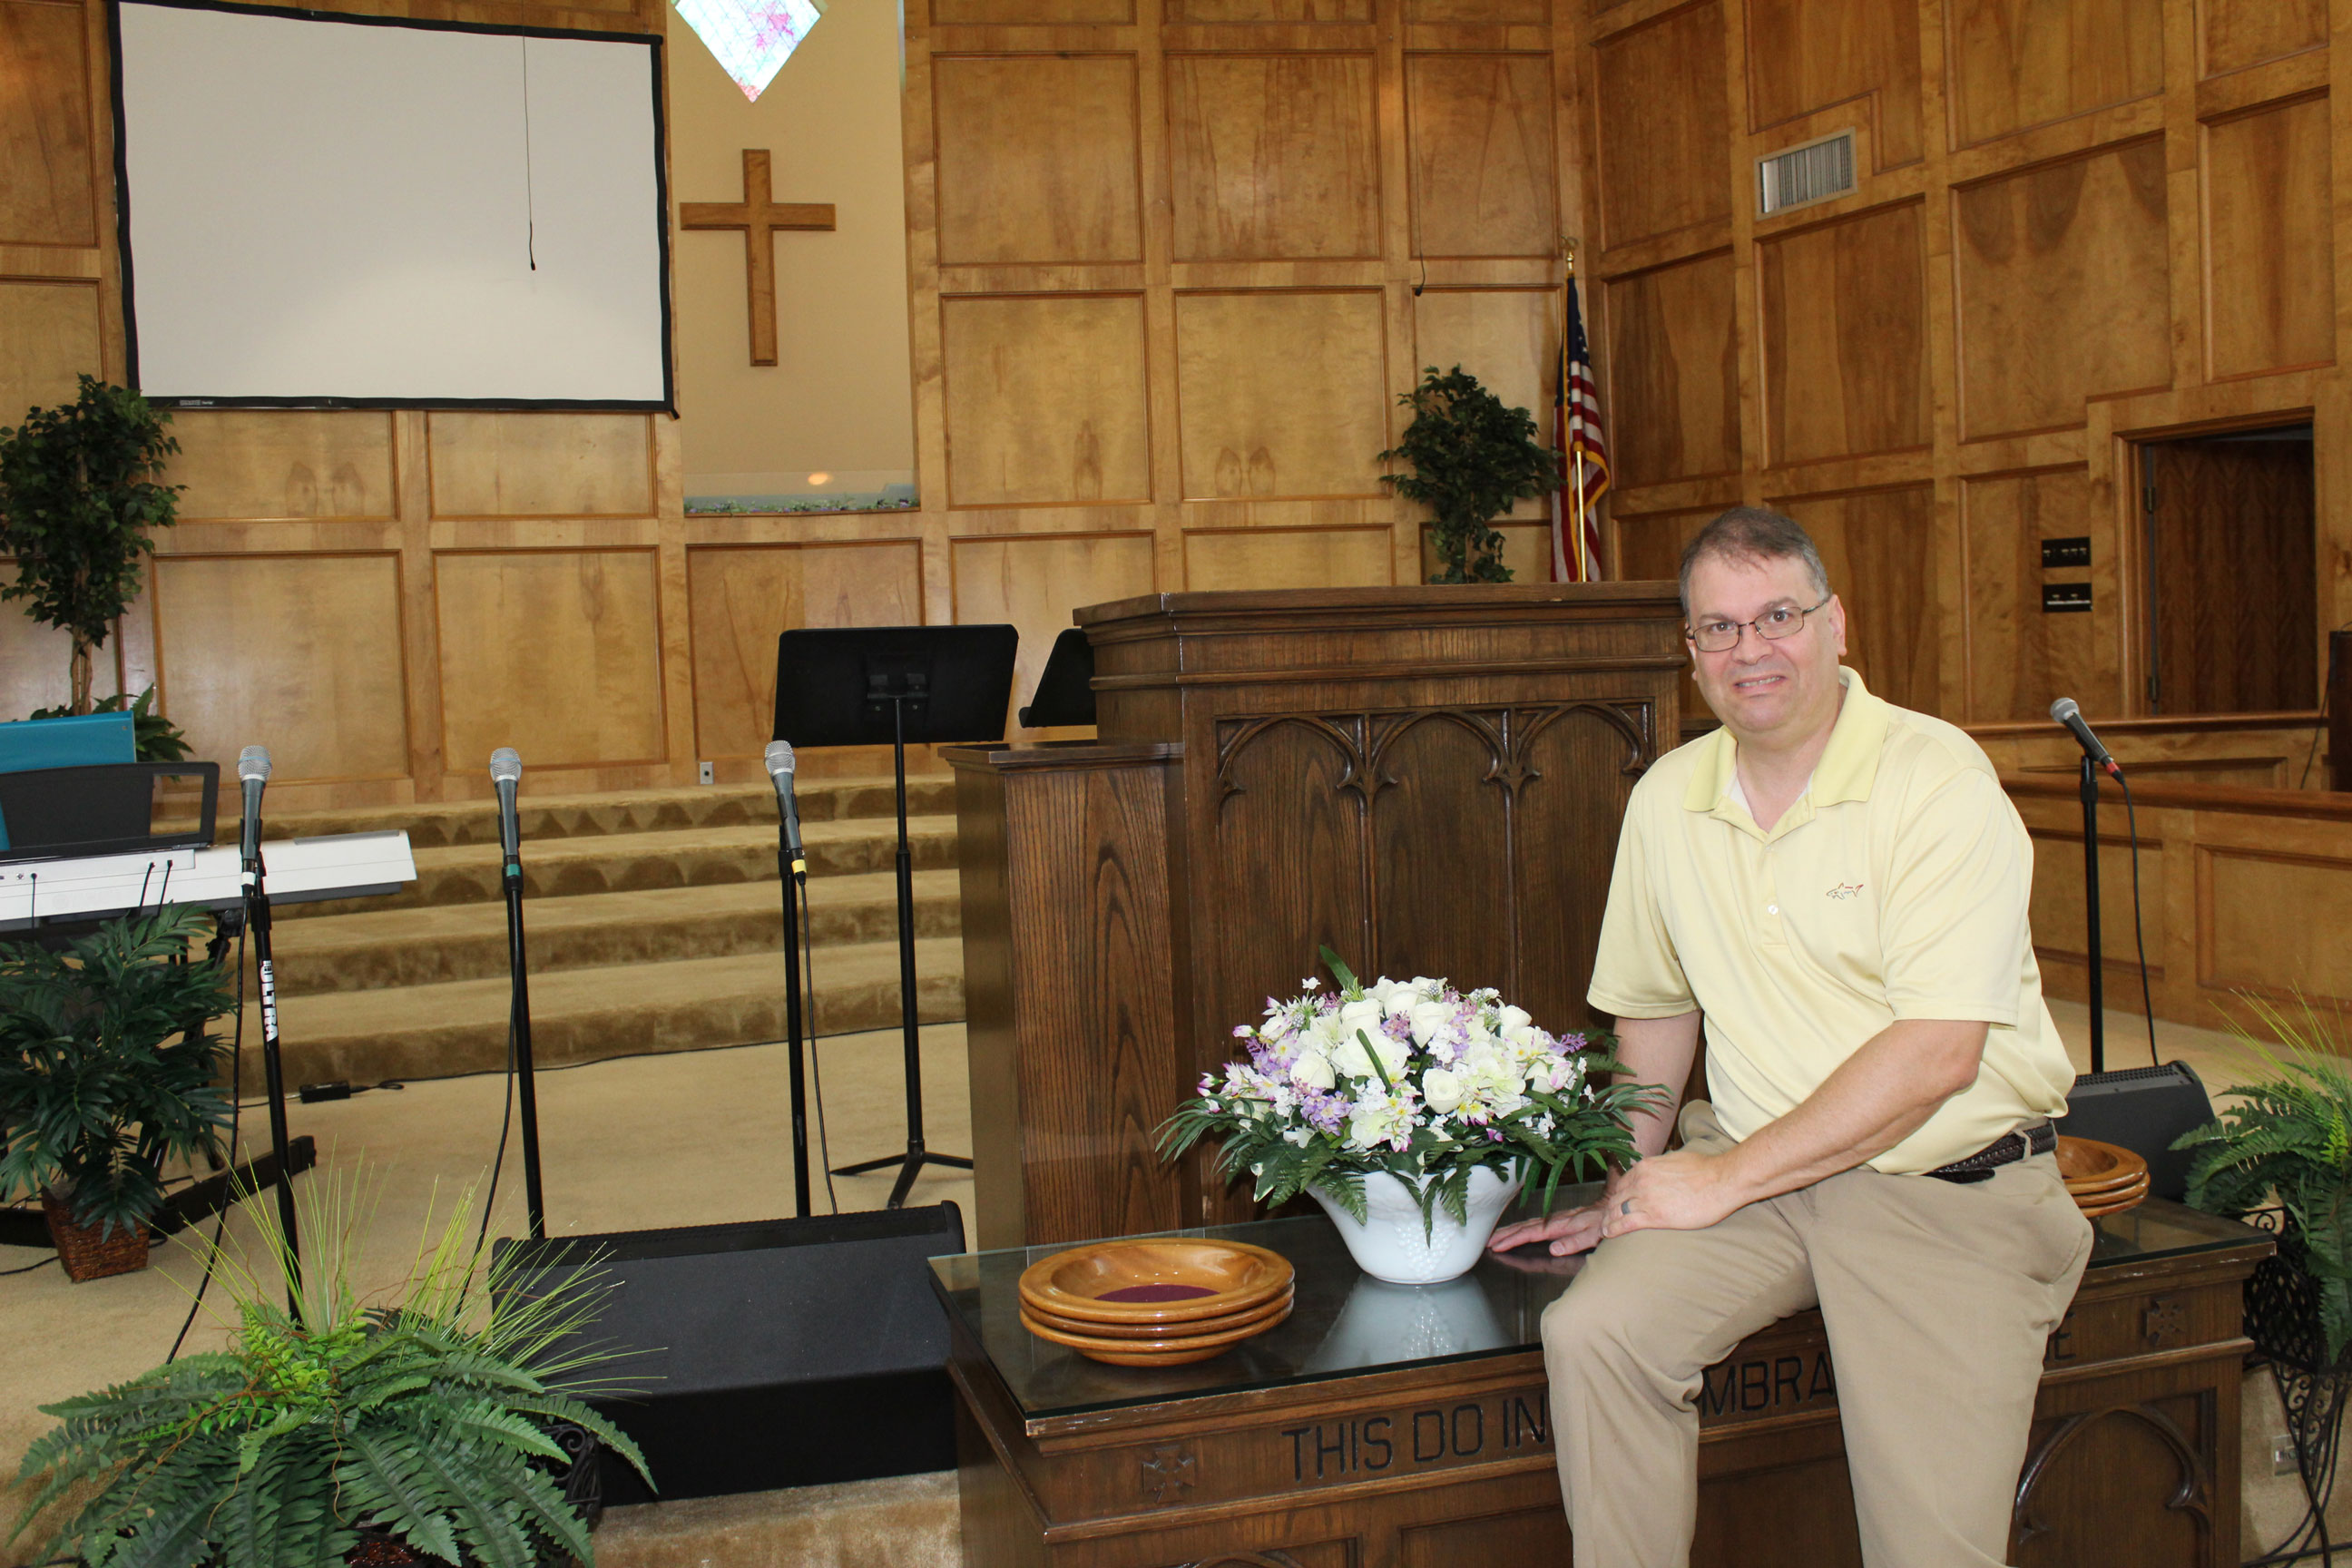 Jay McIntosh is a pastor at First Baptist Church - Grangerland.